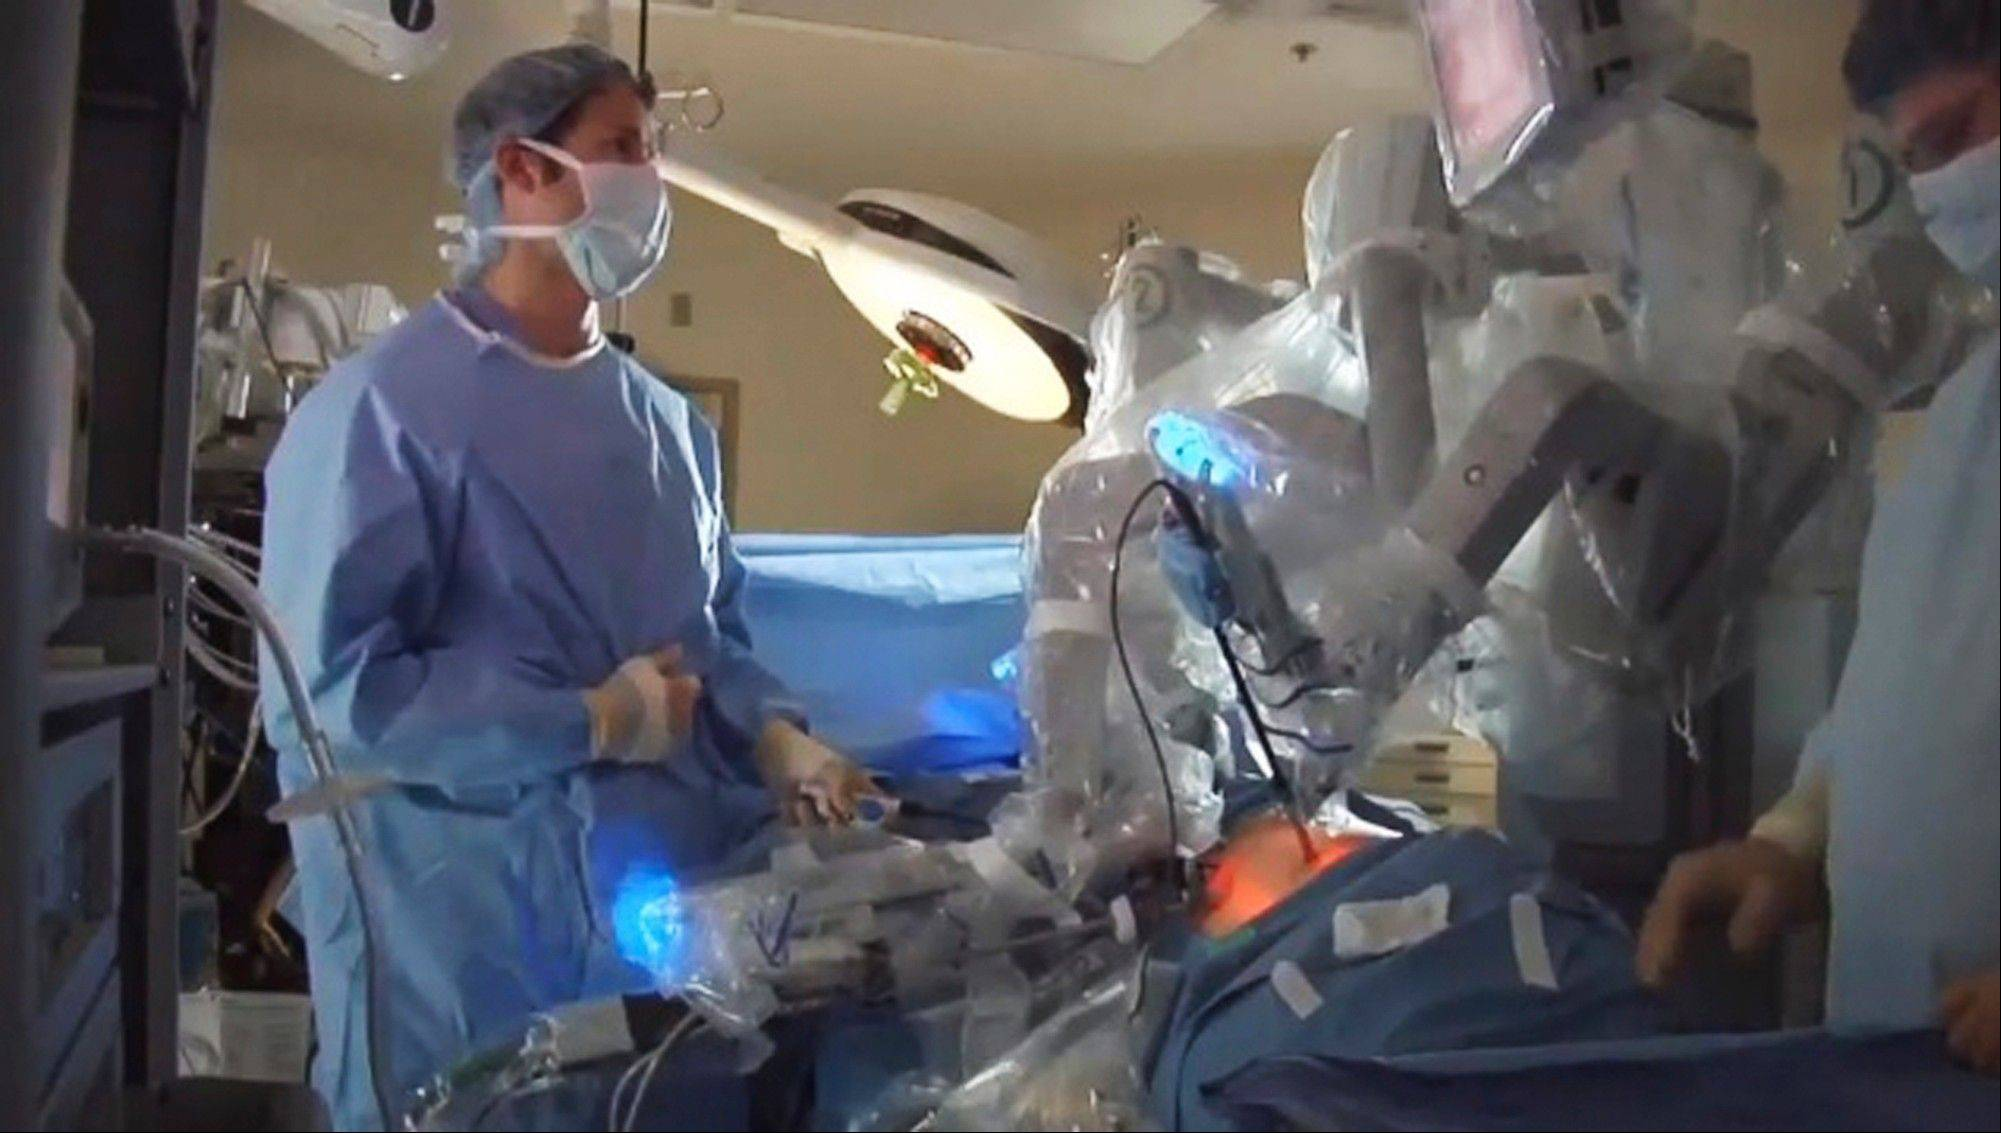 Doctors use the da Vinci robotic system to perform a surgery. Surgeons say the advantages of the system include allowing them to operate sitting down, using small robotic hands with no tremor. But critics say a big increase in robot operations nationwide is due to heavy marketing and hype.